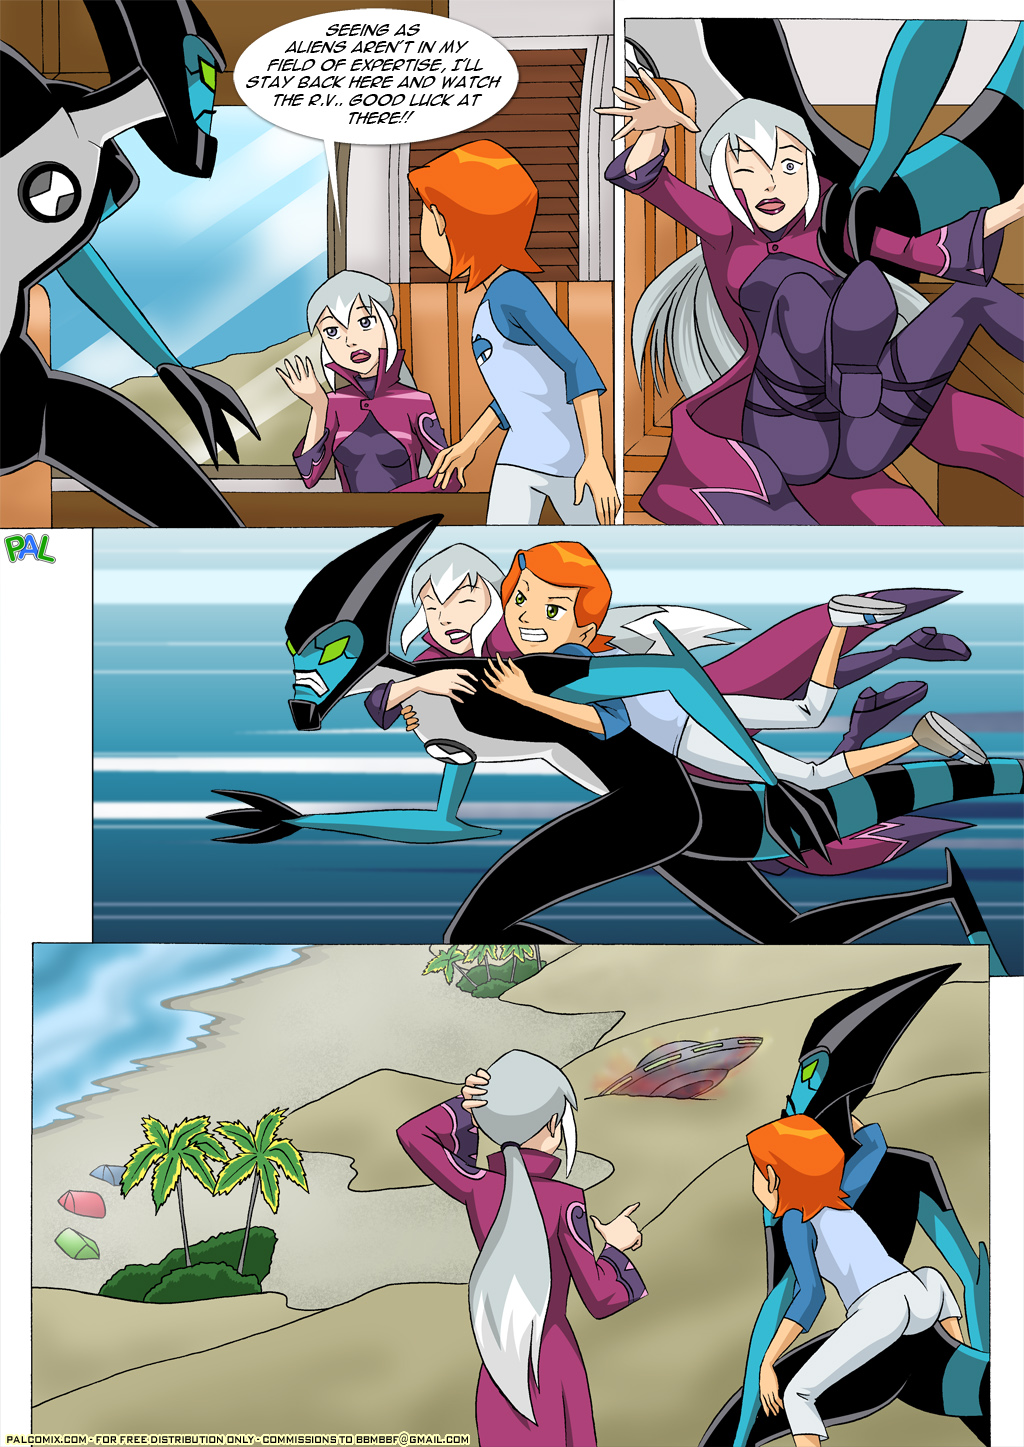 Ben 10 naked comic Full HD Adult free site image. Comments: 1